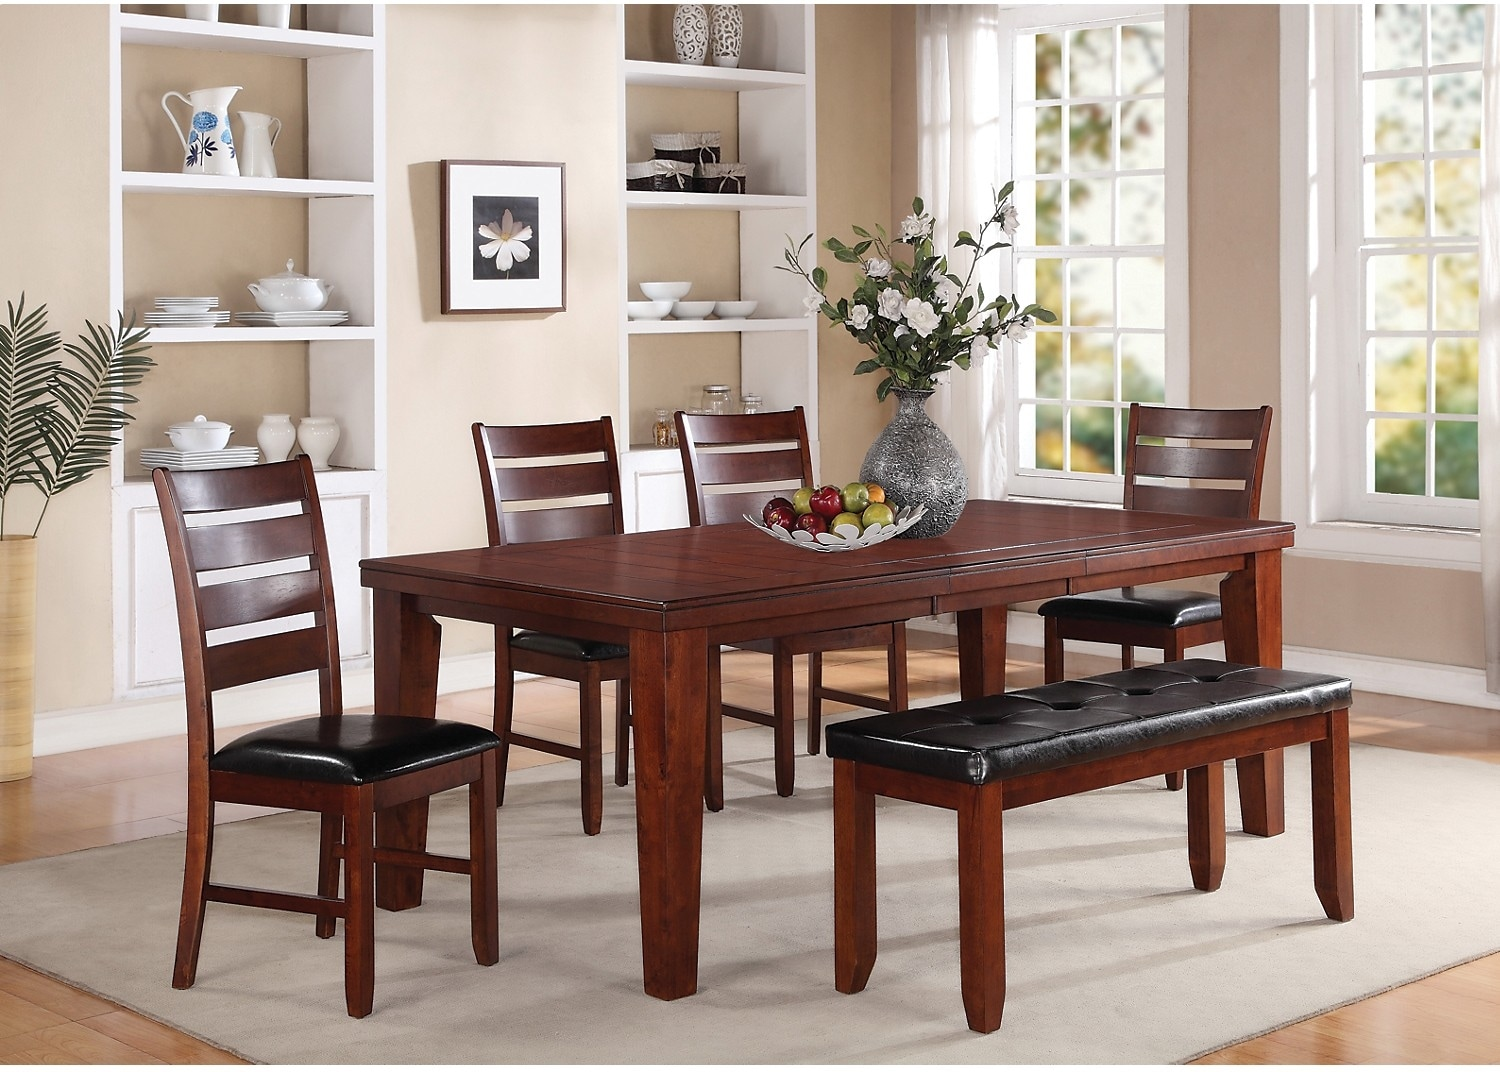 the brick dining room | Chloe 6-Piece Dining Package | The Brick